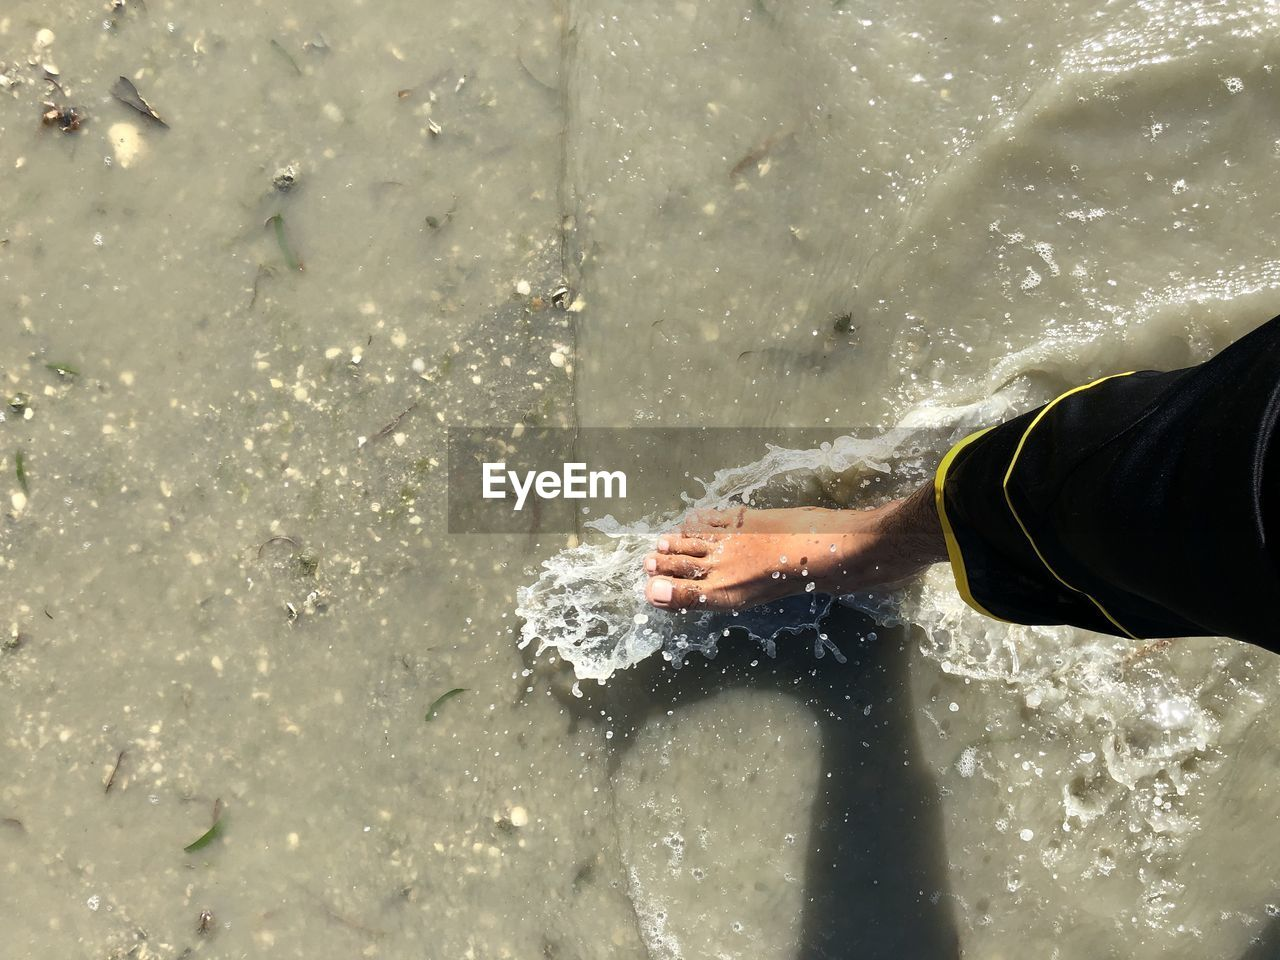 real people, one person, human body part, water, lifestyles, motion, human hand, body part, hand, unrecognizable person, leisure activity, nature, day, splashing, outdoors, human leg, men, sea, spraying, human foot, finger, flowing water